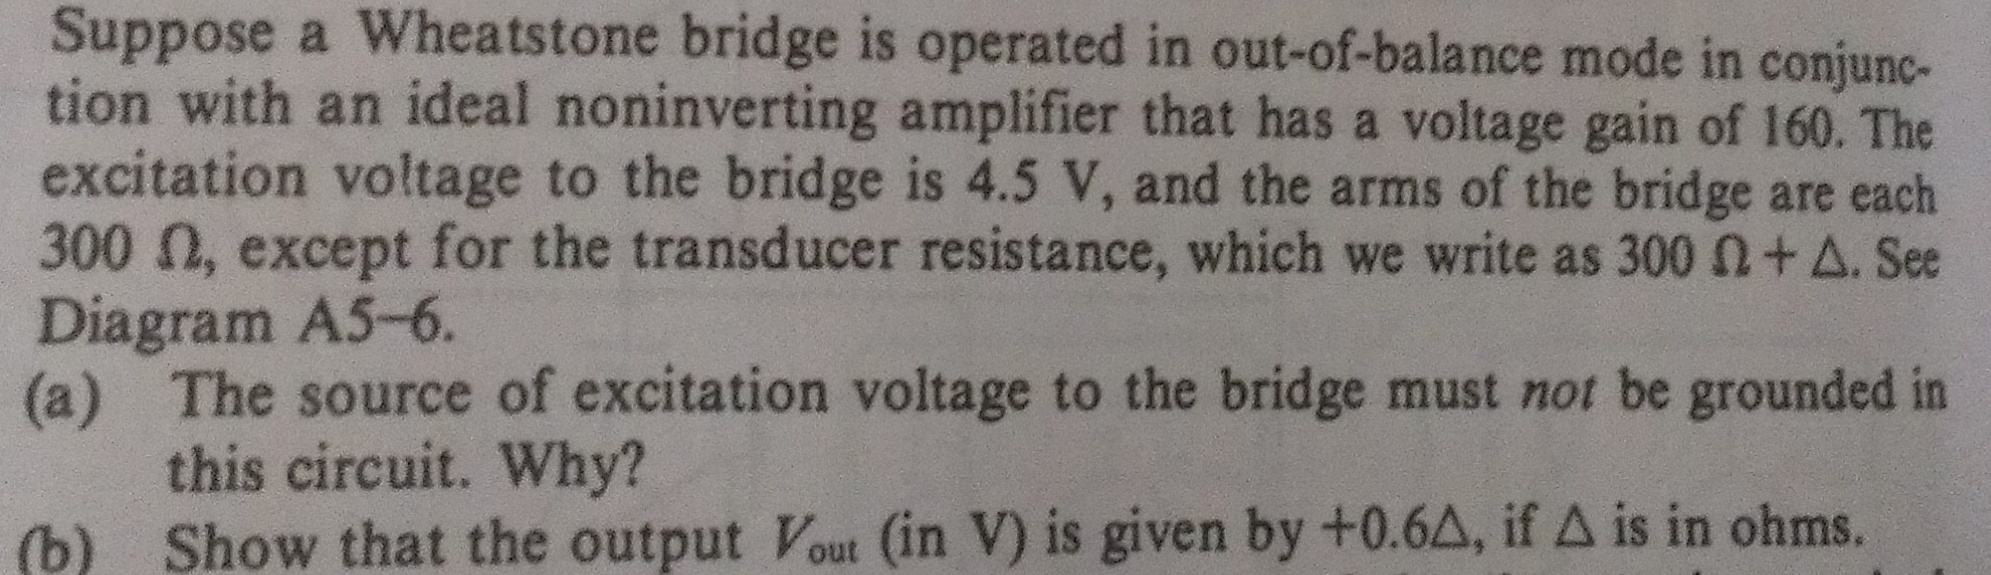 Suppose a Wheatstone bridge is operated in out-of-